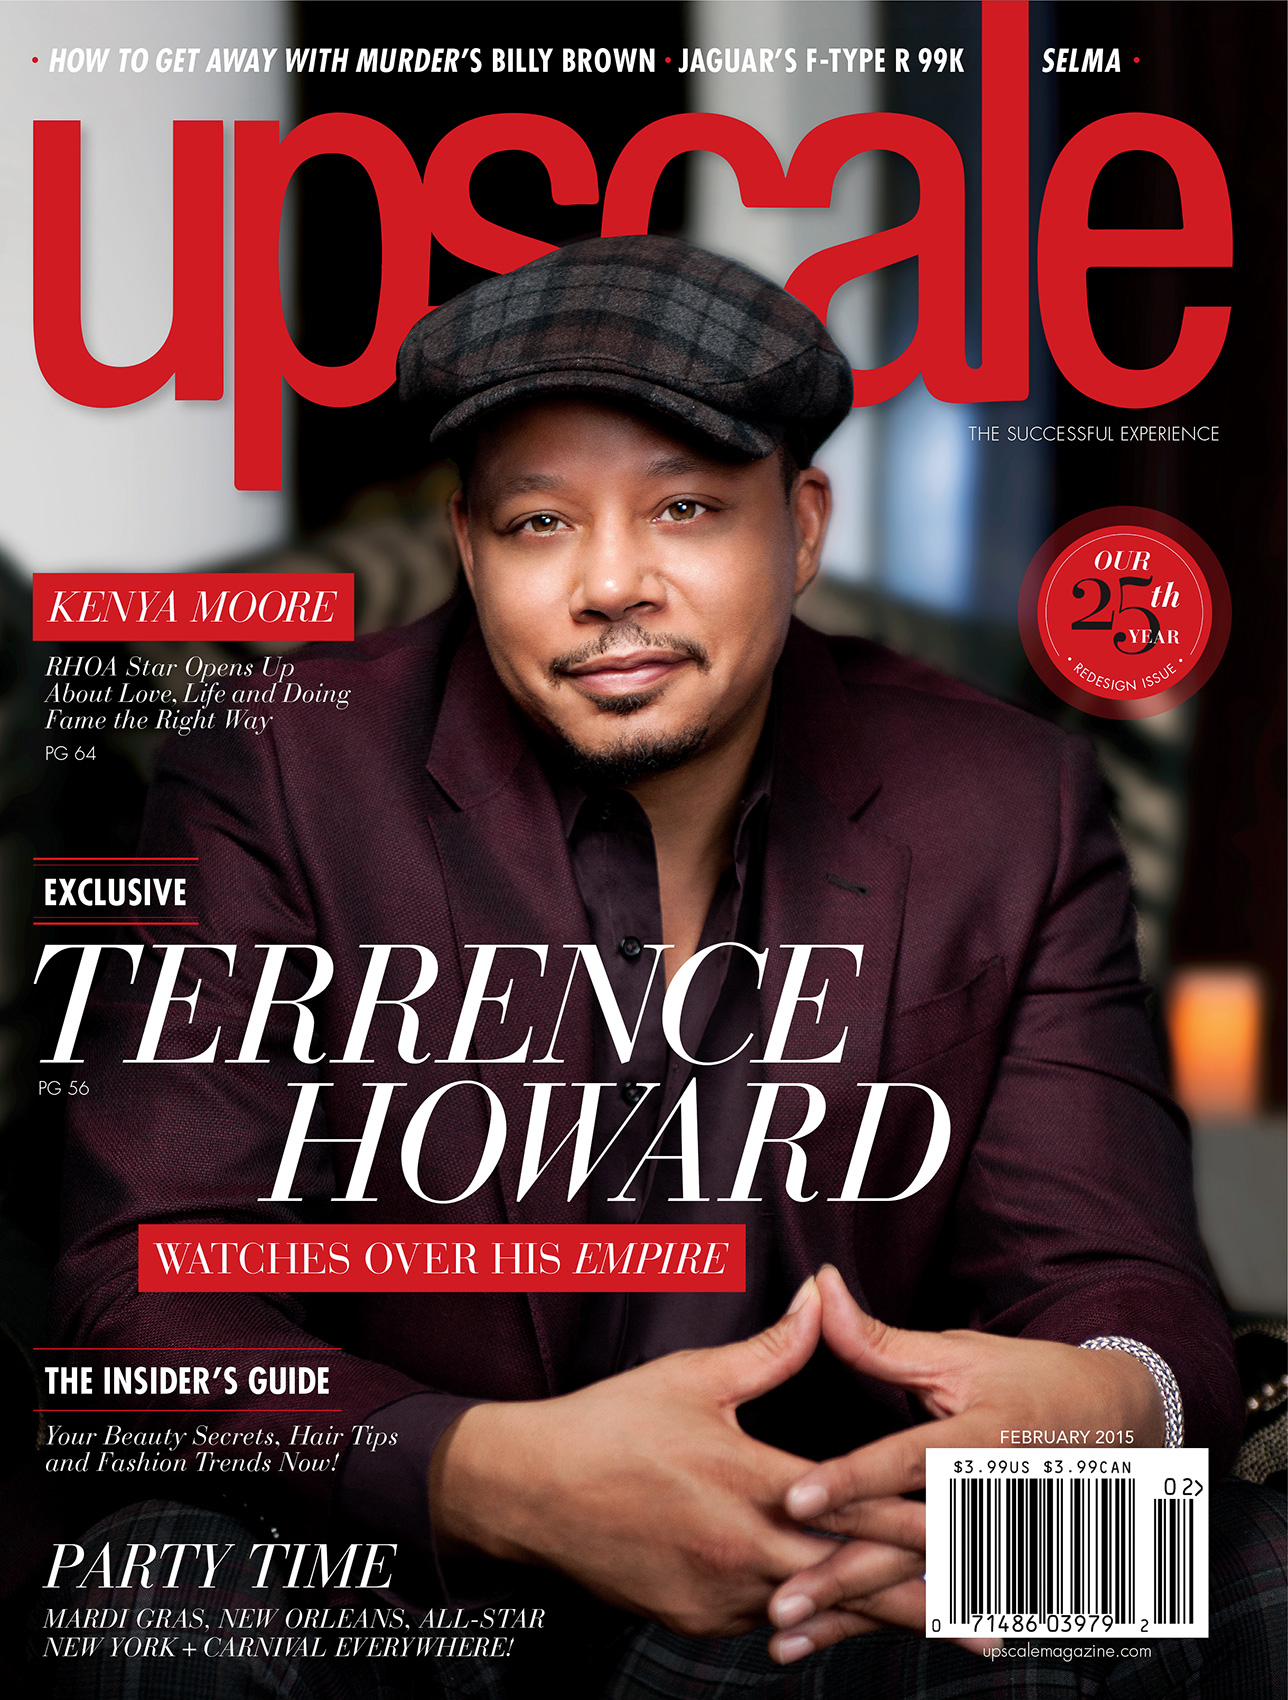 Upscale_Terrence-Howard_cover